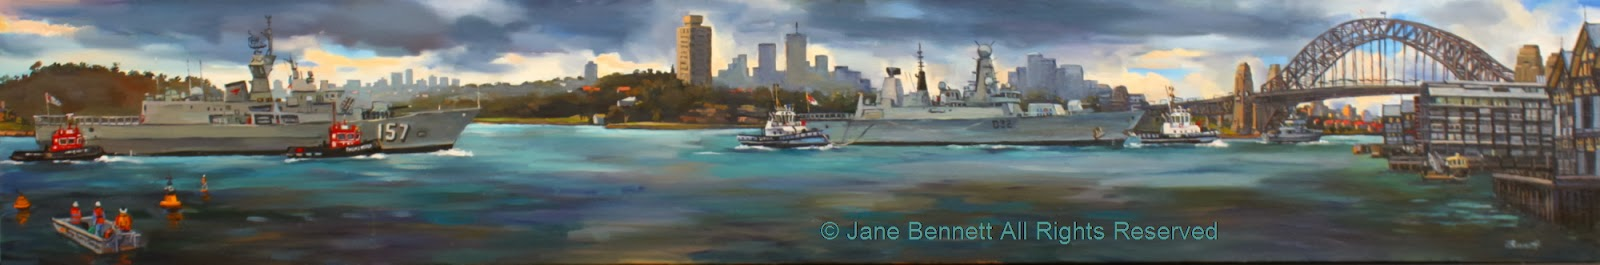 plein air oil painting by artist Jane Bennett of HMS Daring and HMAS Perth departing under the Sydney Harbour Bridge during International Fleet Review